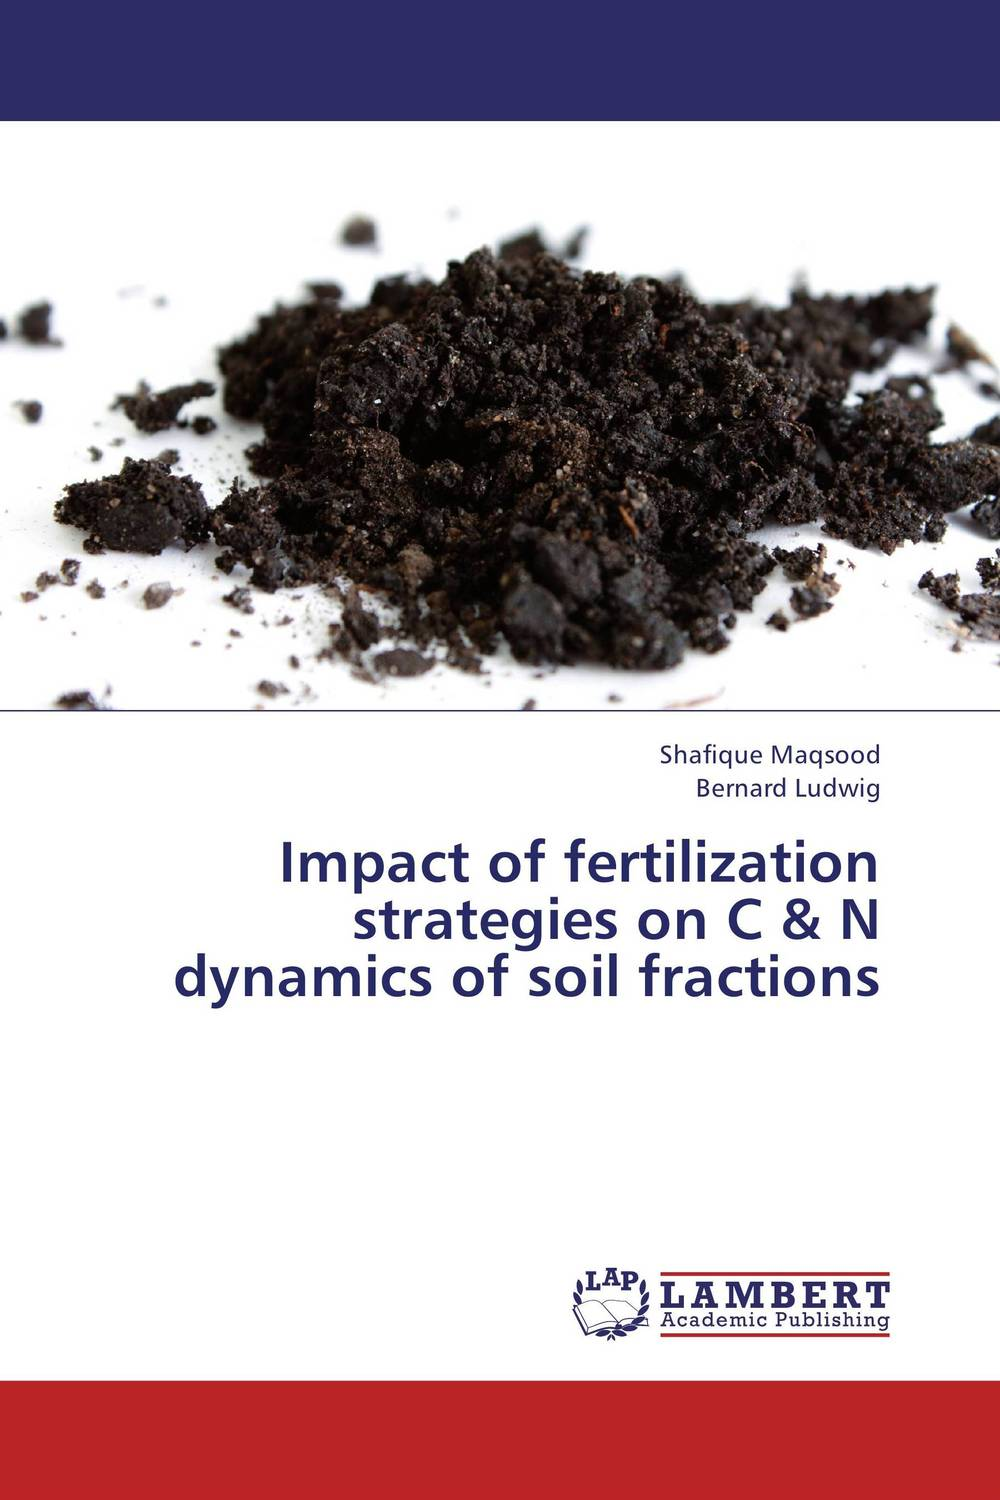 Impact of fertilization strategies on C & N dynamics of soil fractions evaluation of various methods of fertilizer application in potato